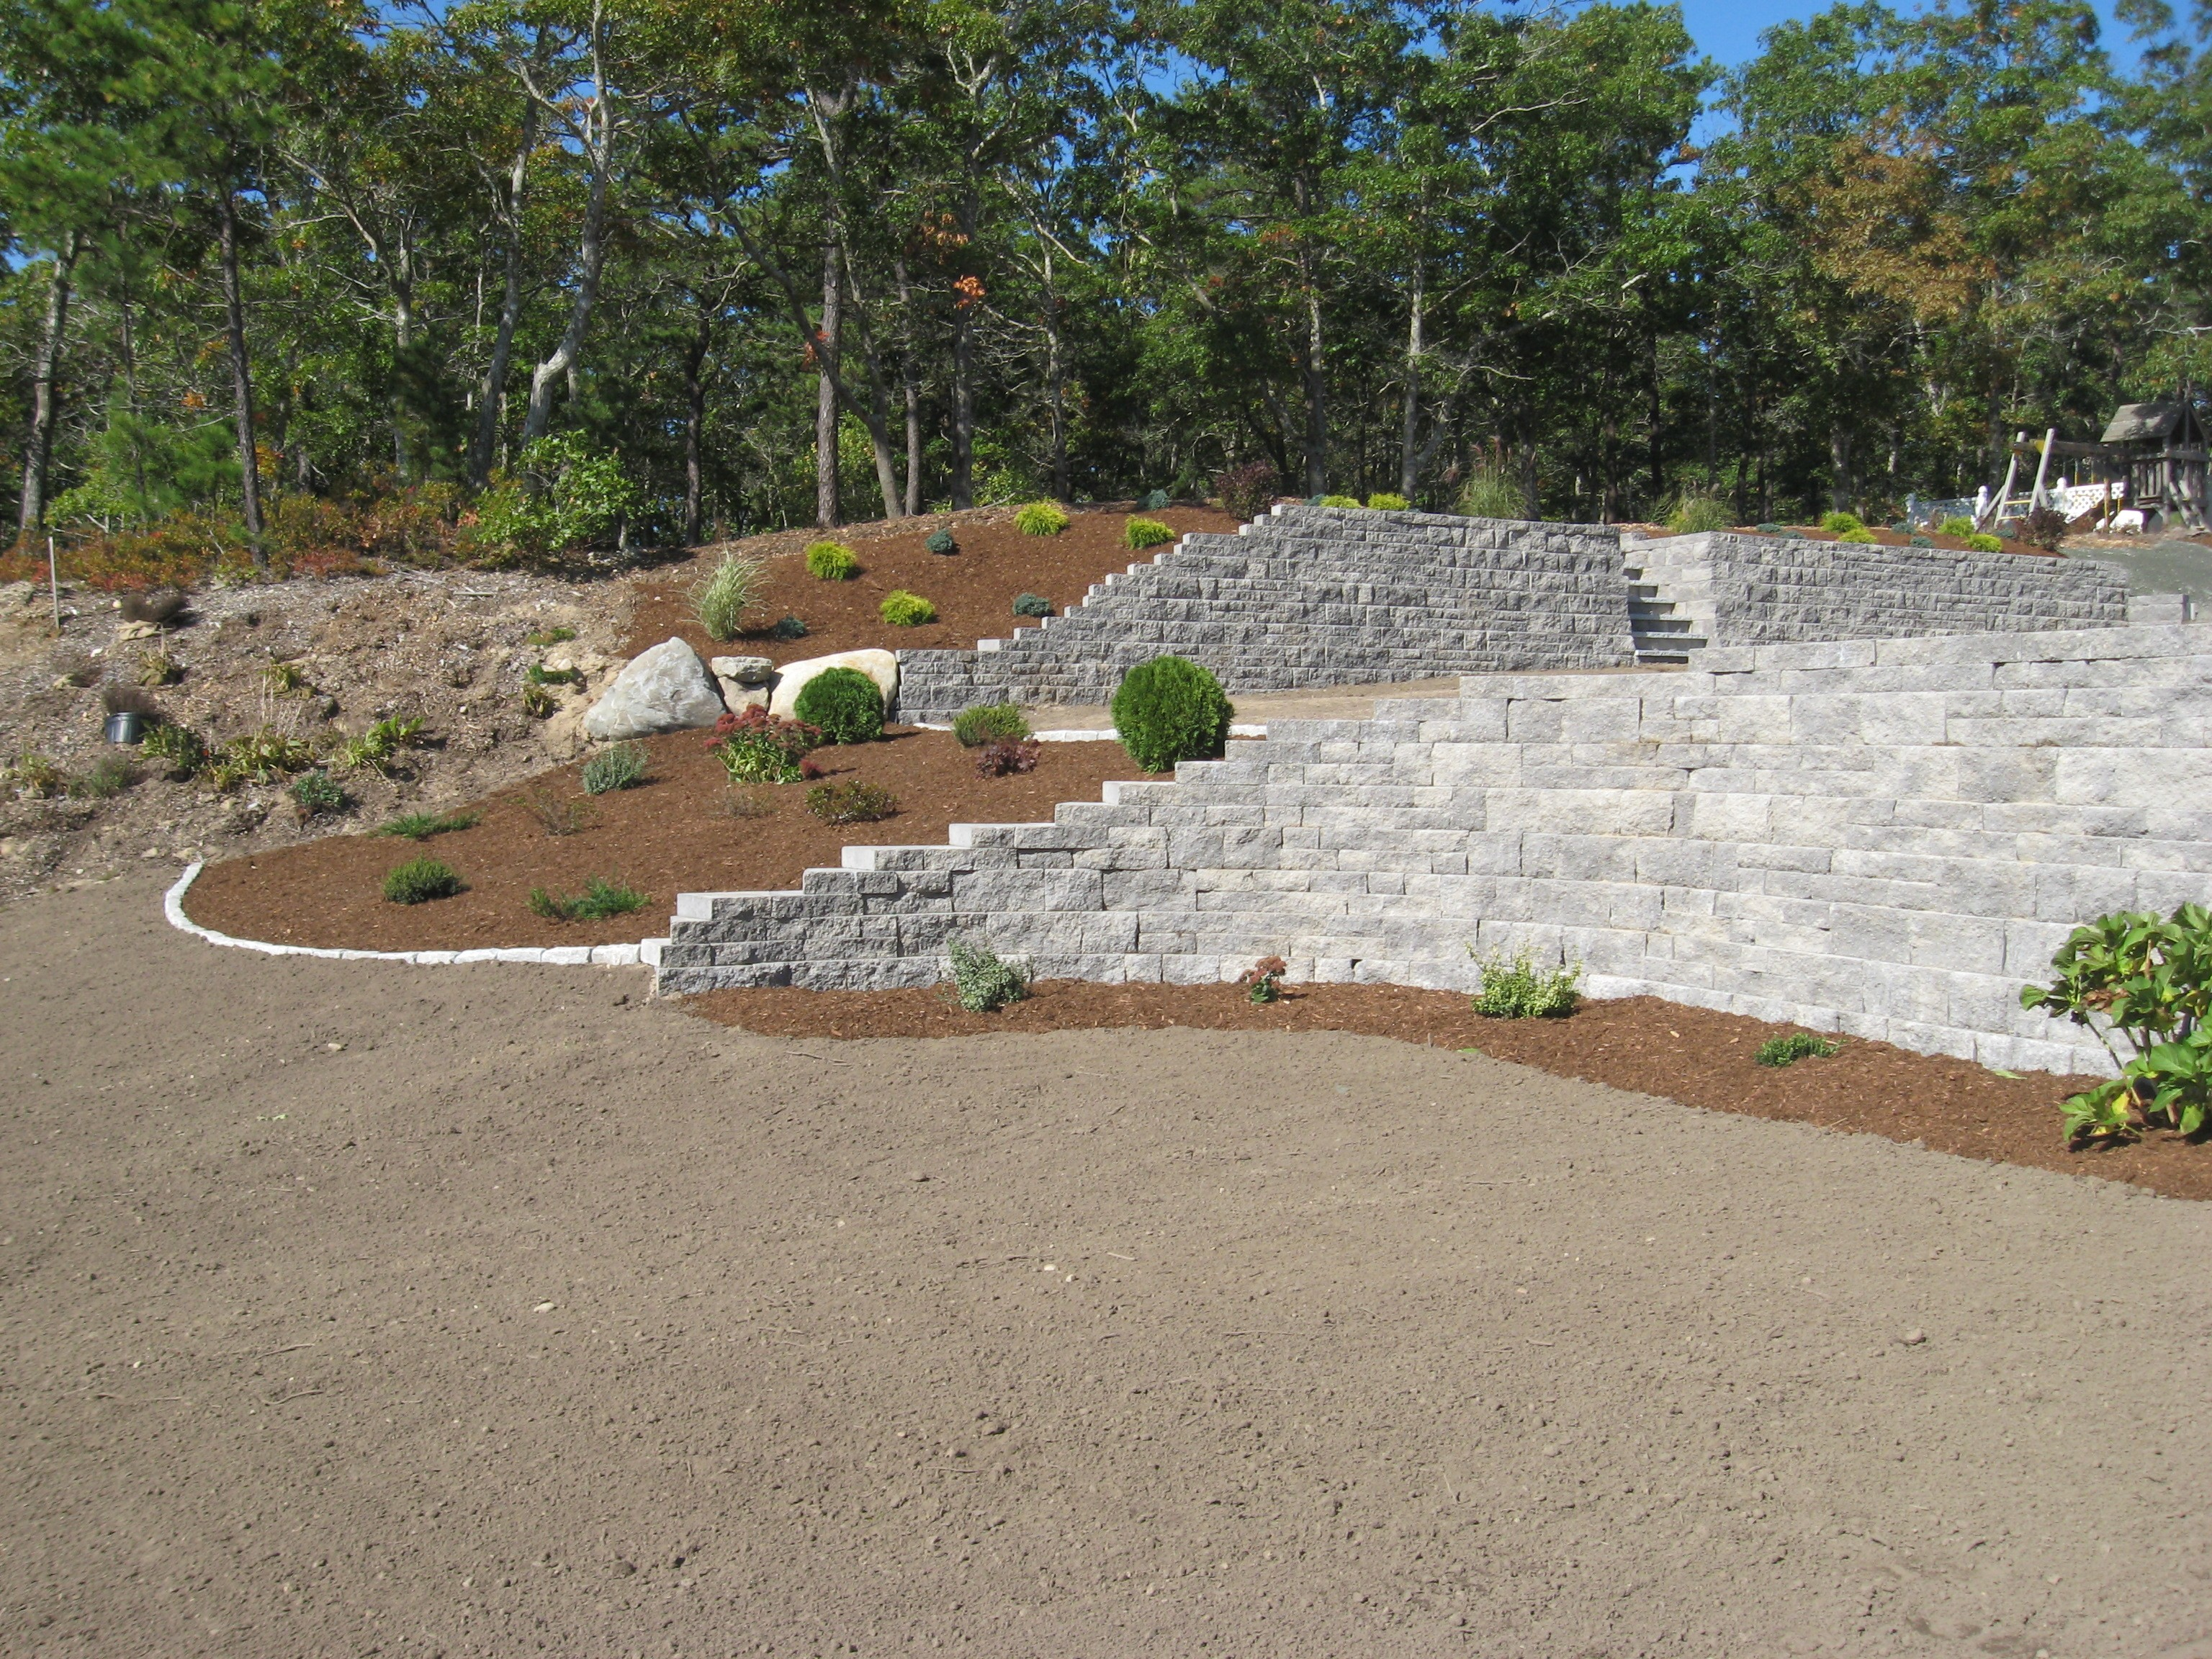 Retaining Wall With Plantings - Sandwich